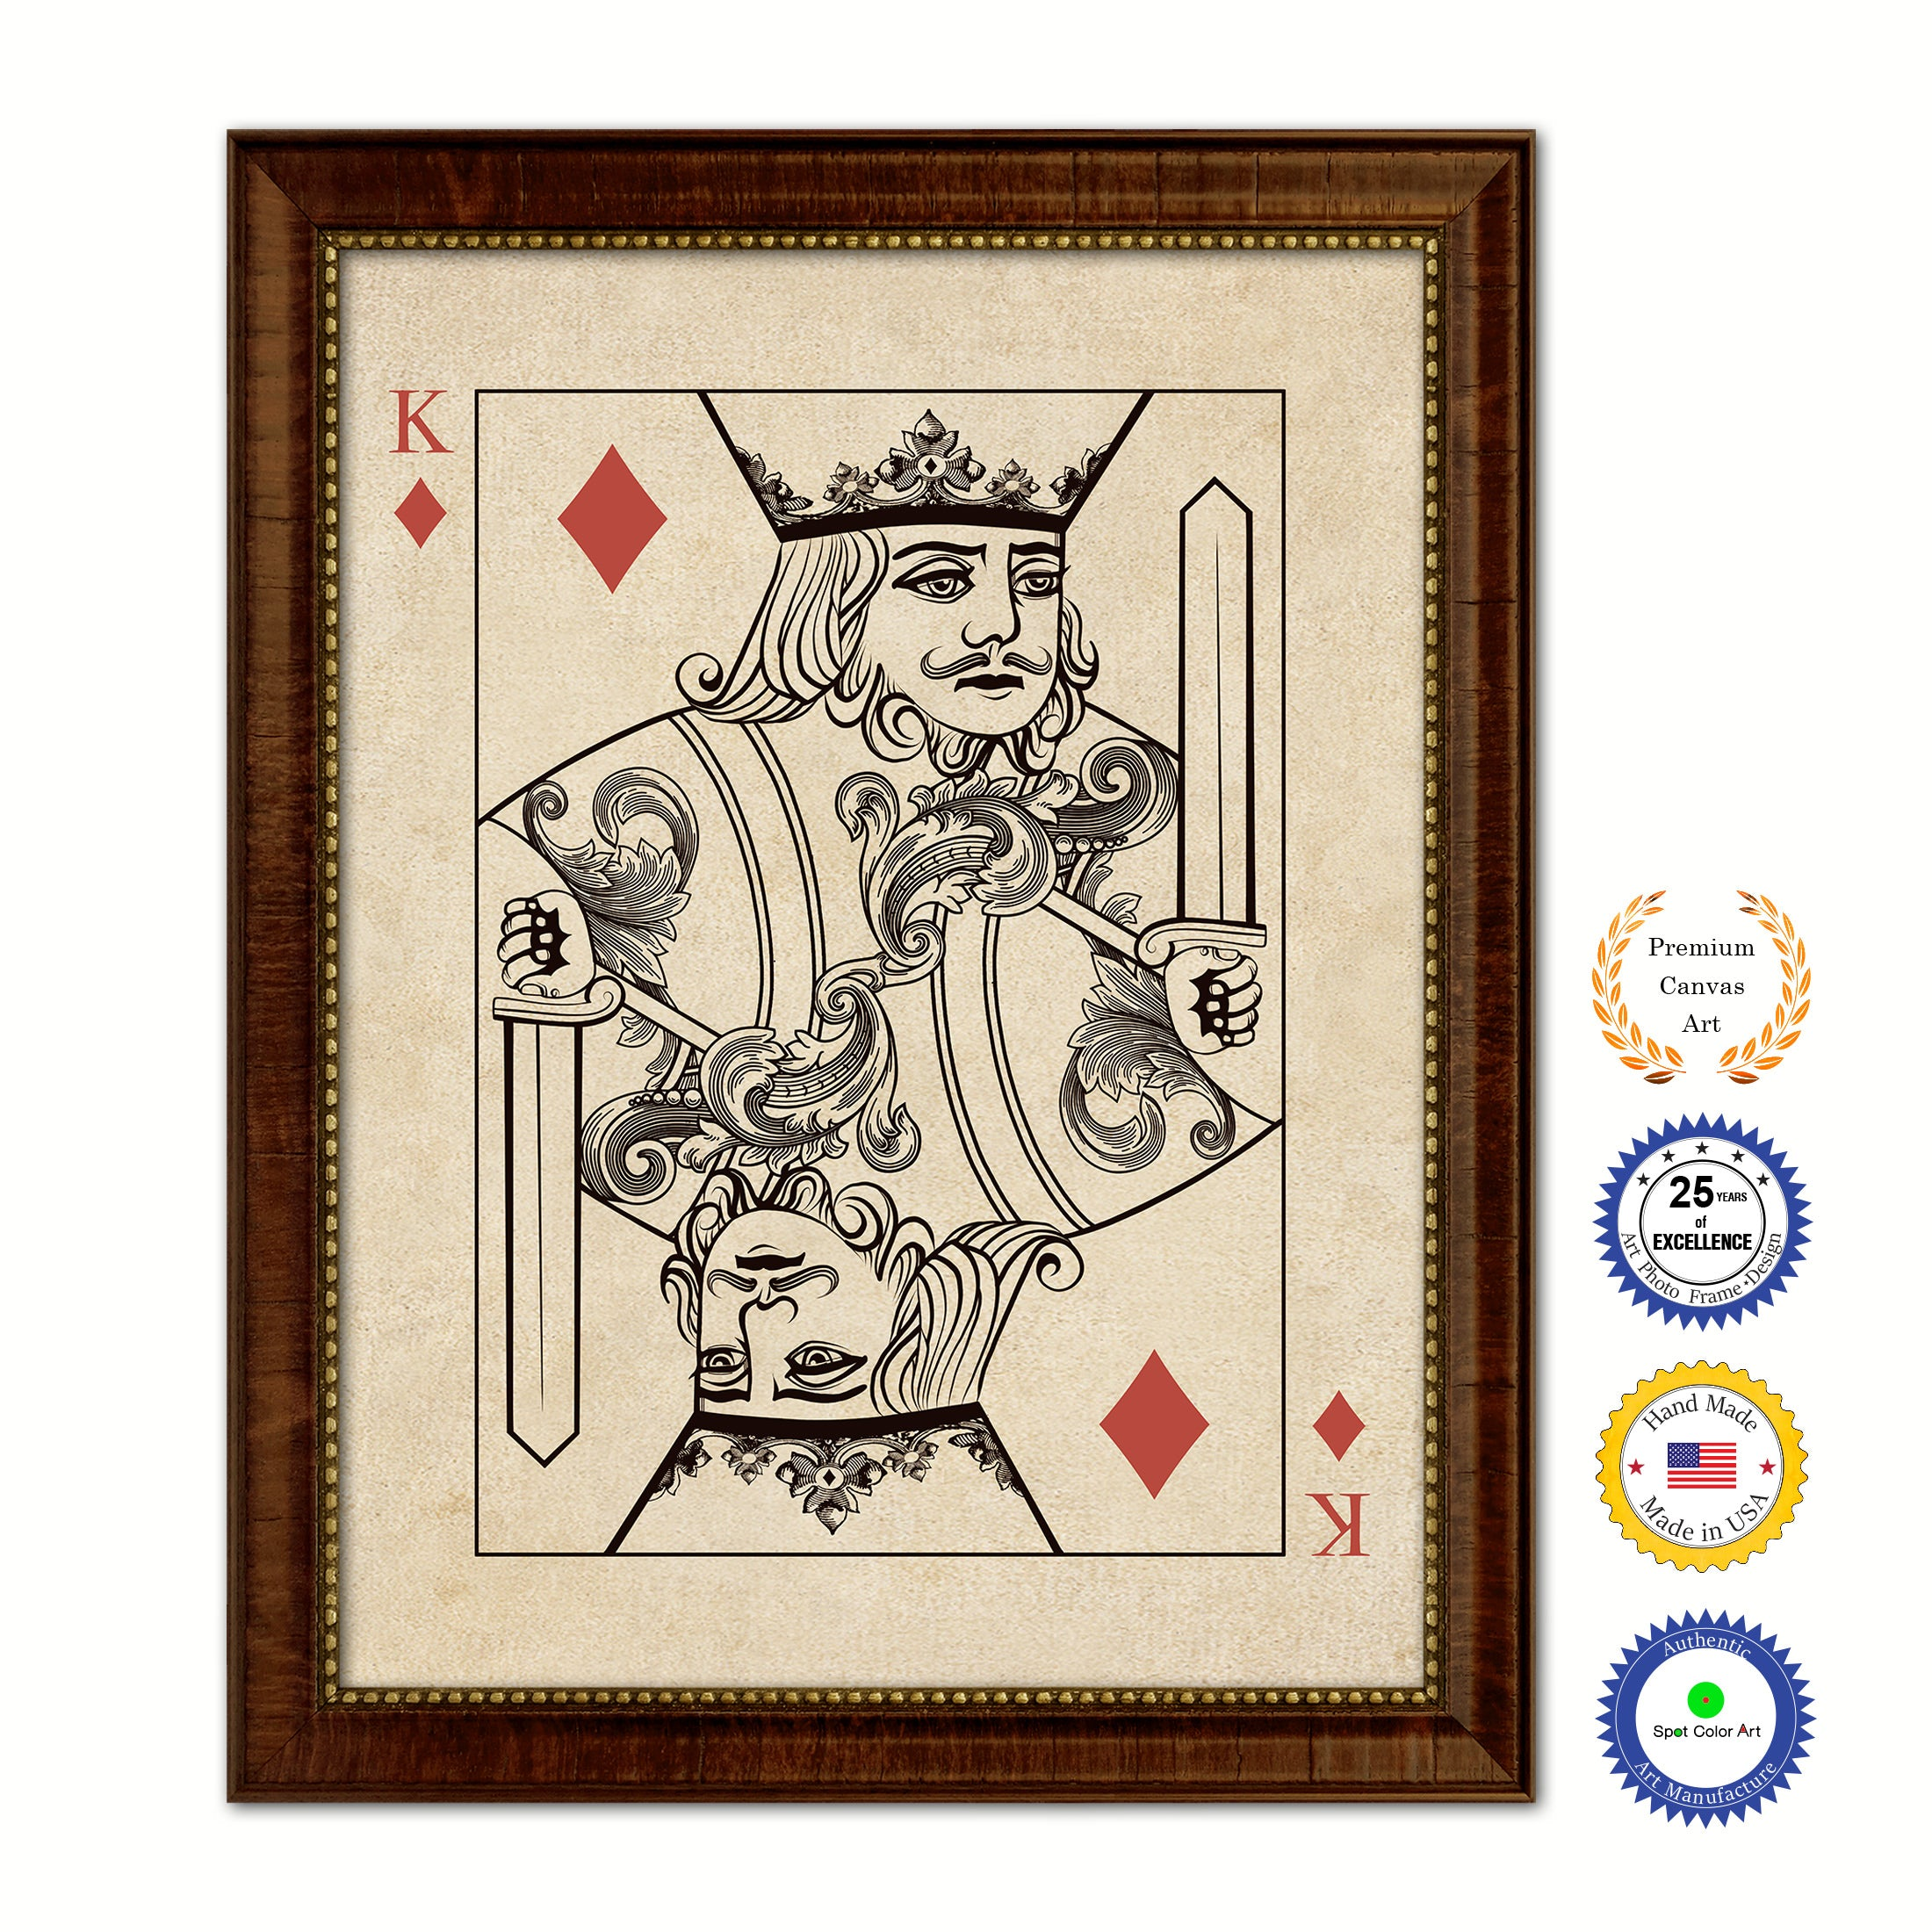 King Diamond Poker Decks of Vintage Cards Print on Canvas Brown Custom Framed